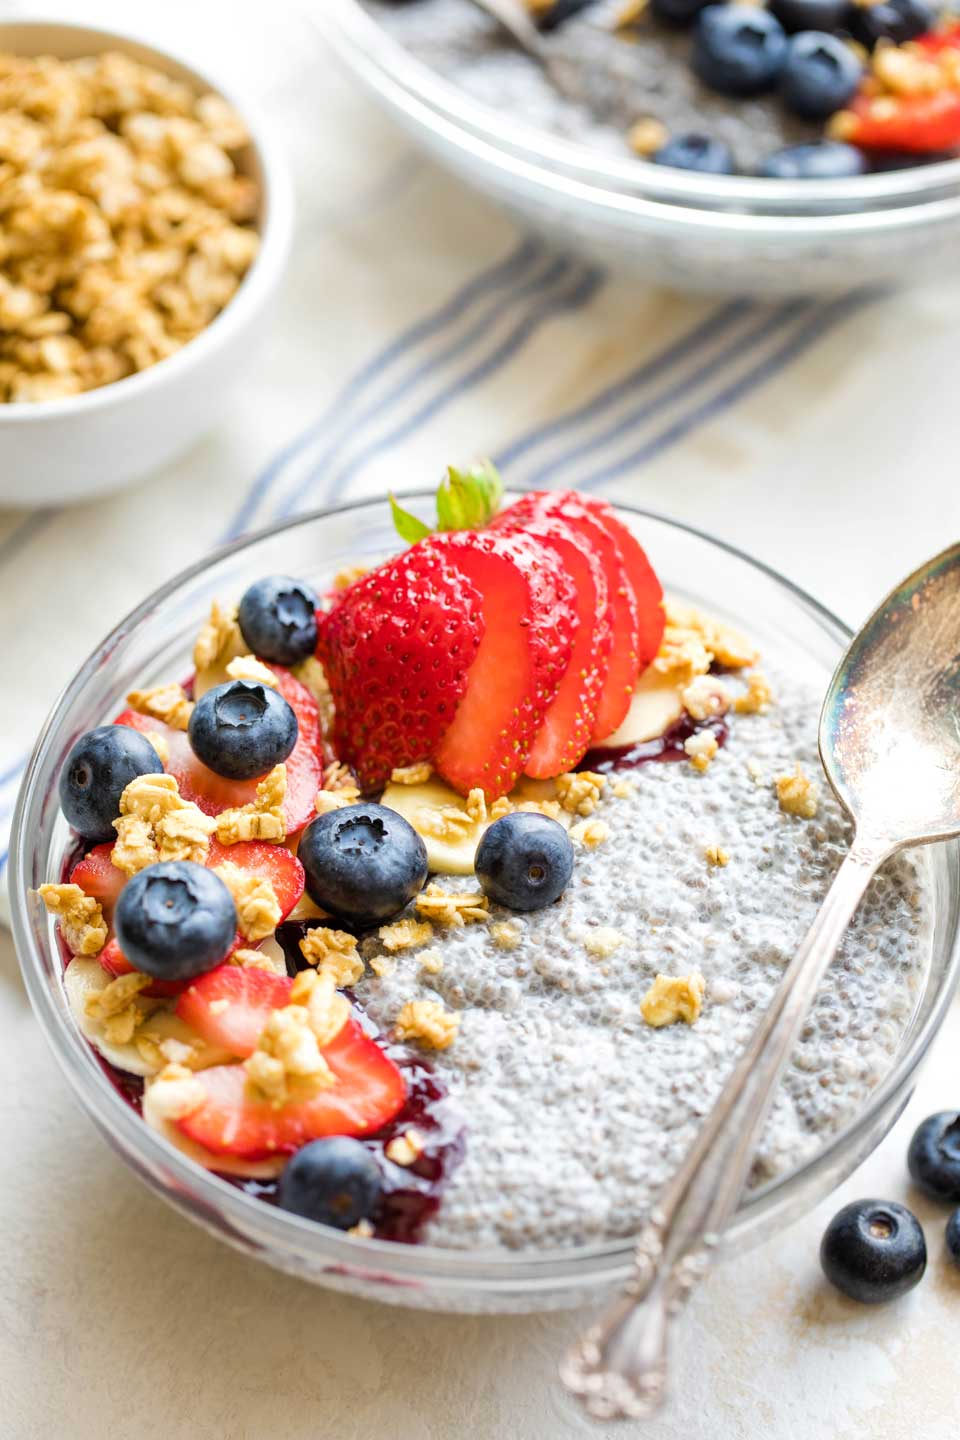 bowl of chia seed pudding with topping, a spoon laying across the bowl, and the serving bowl and extra toppings in background